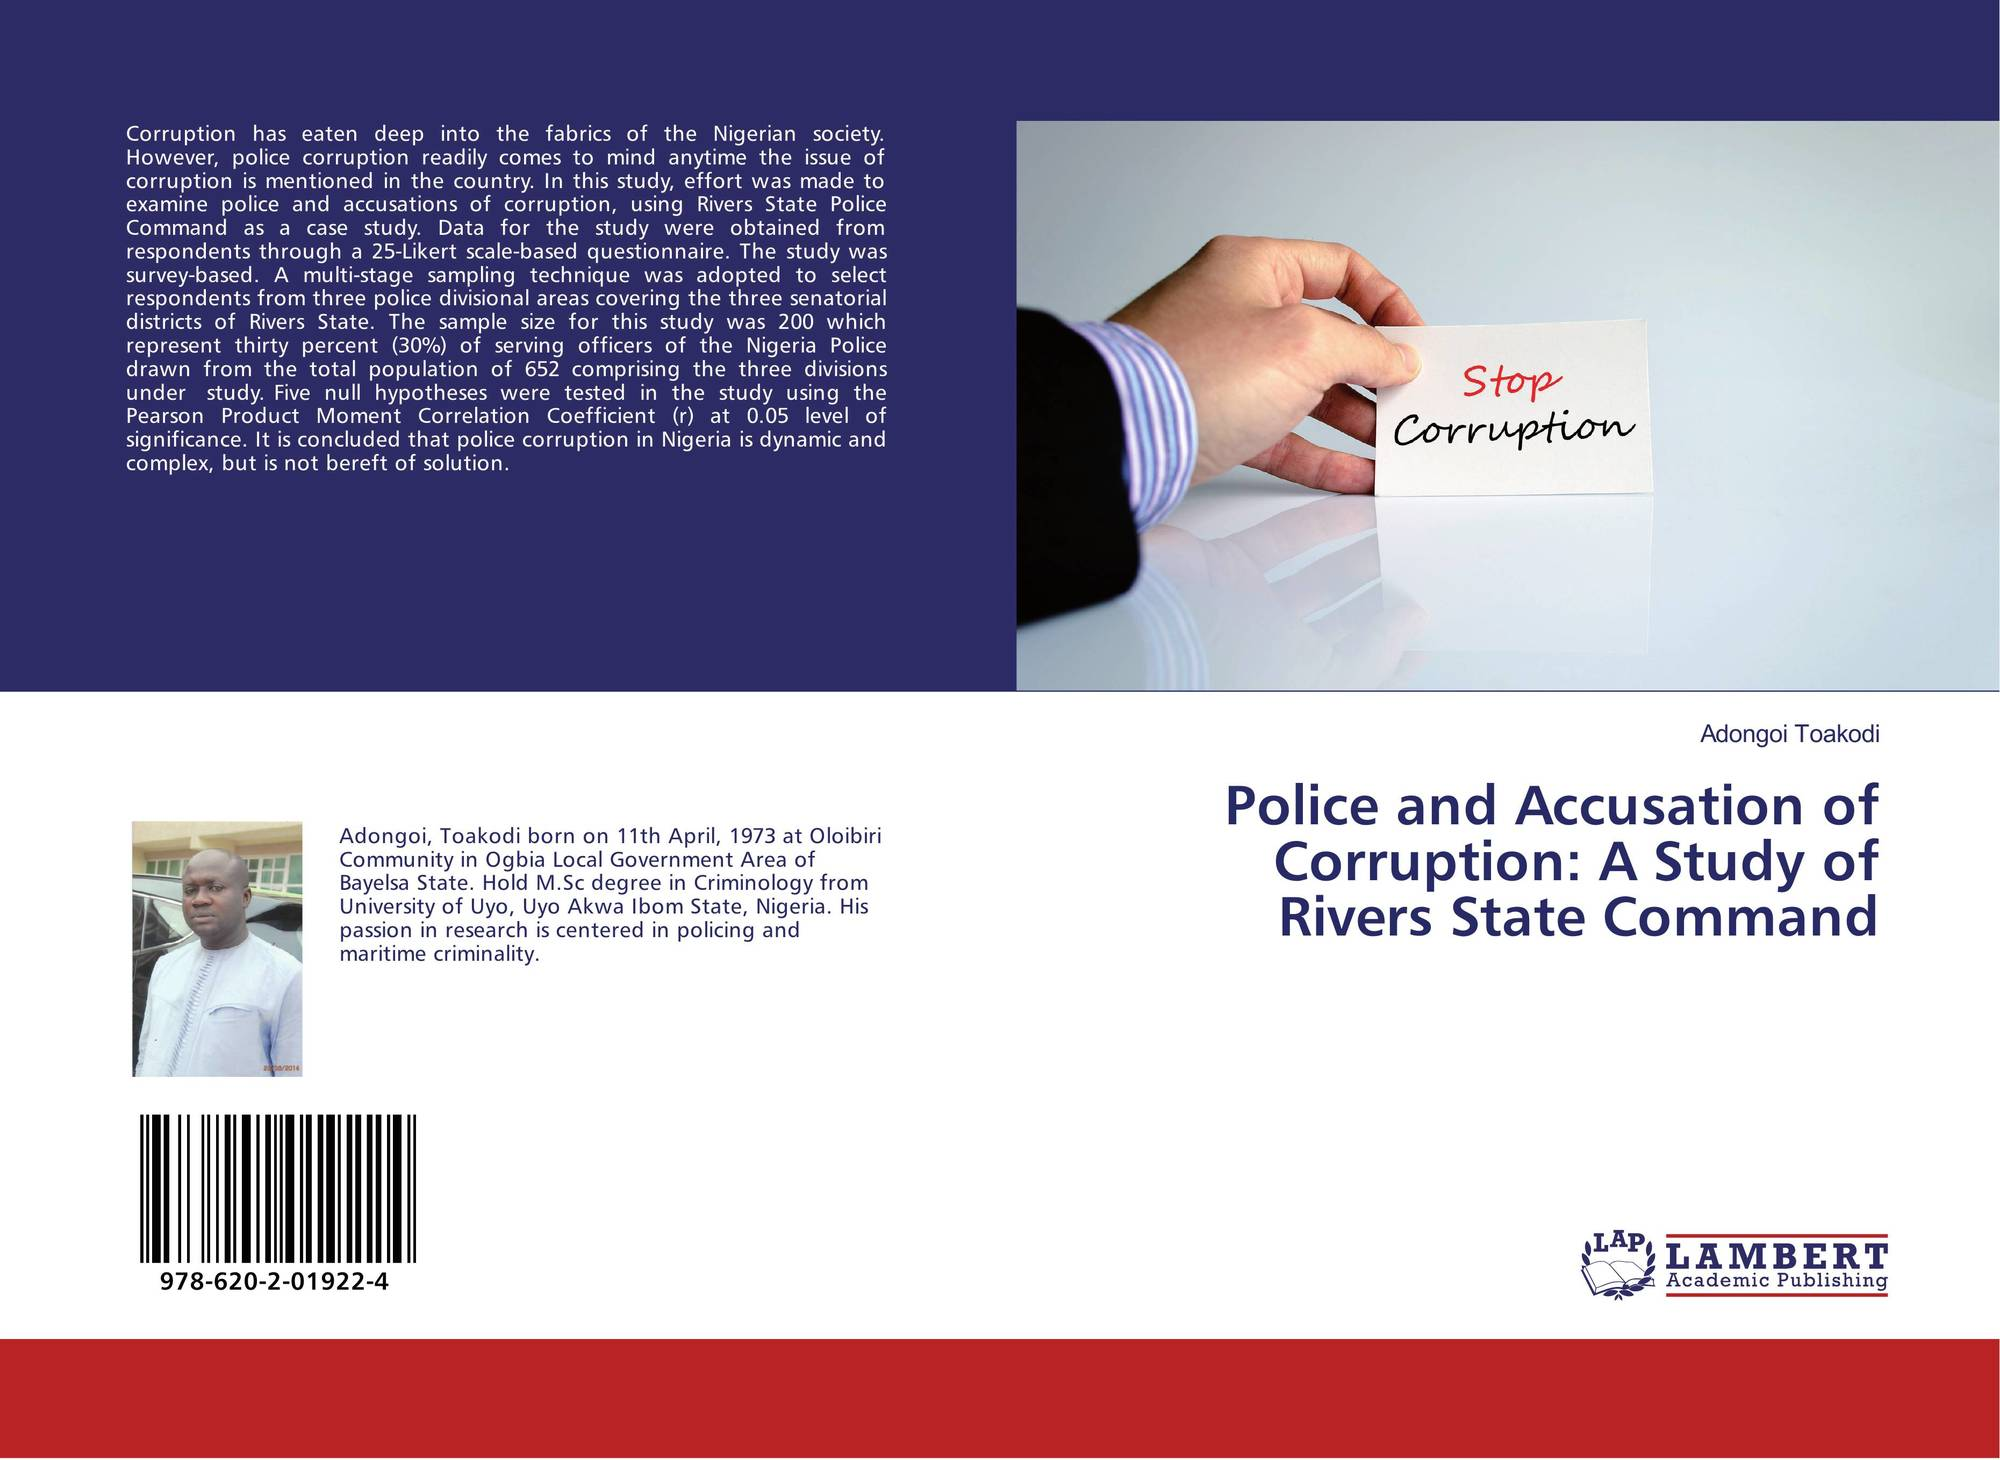 nature and causes of police corruption Learned about police corruption in south africa from press stories, sayed and bruce (1998) collected and analysed the instances of police corruption reported on over a 15-month period from february 1996 to april 1997.